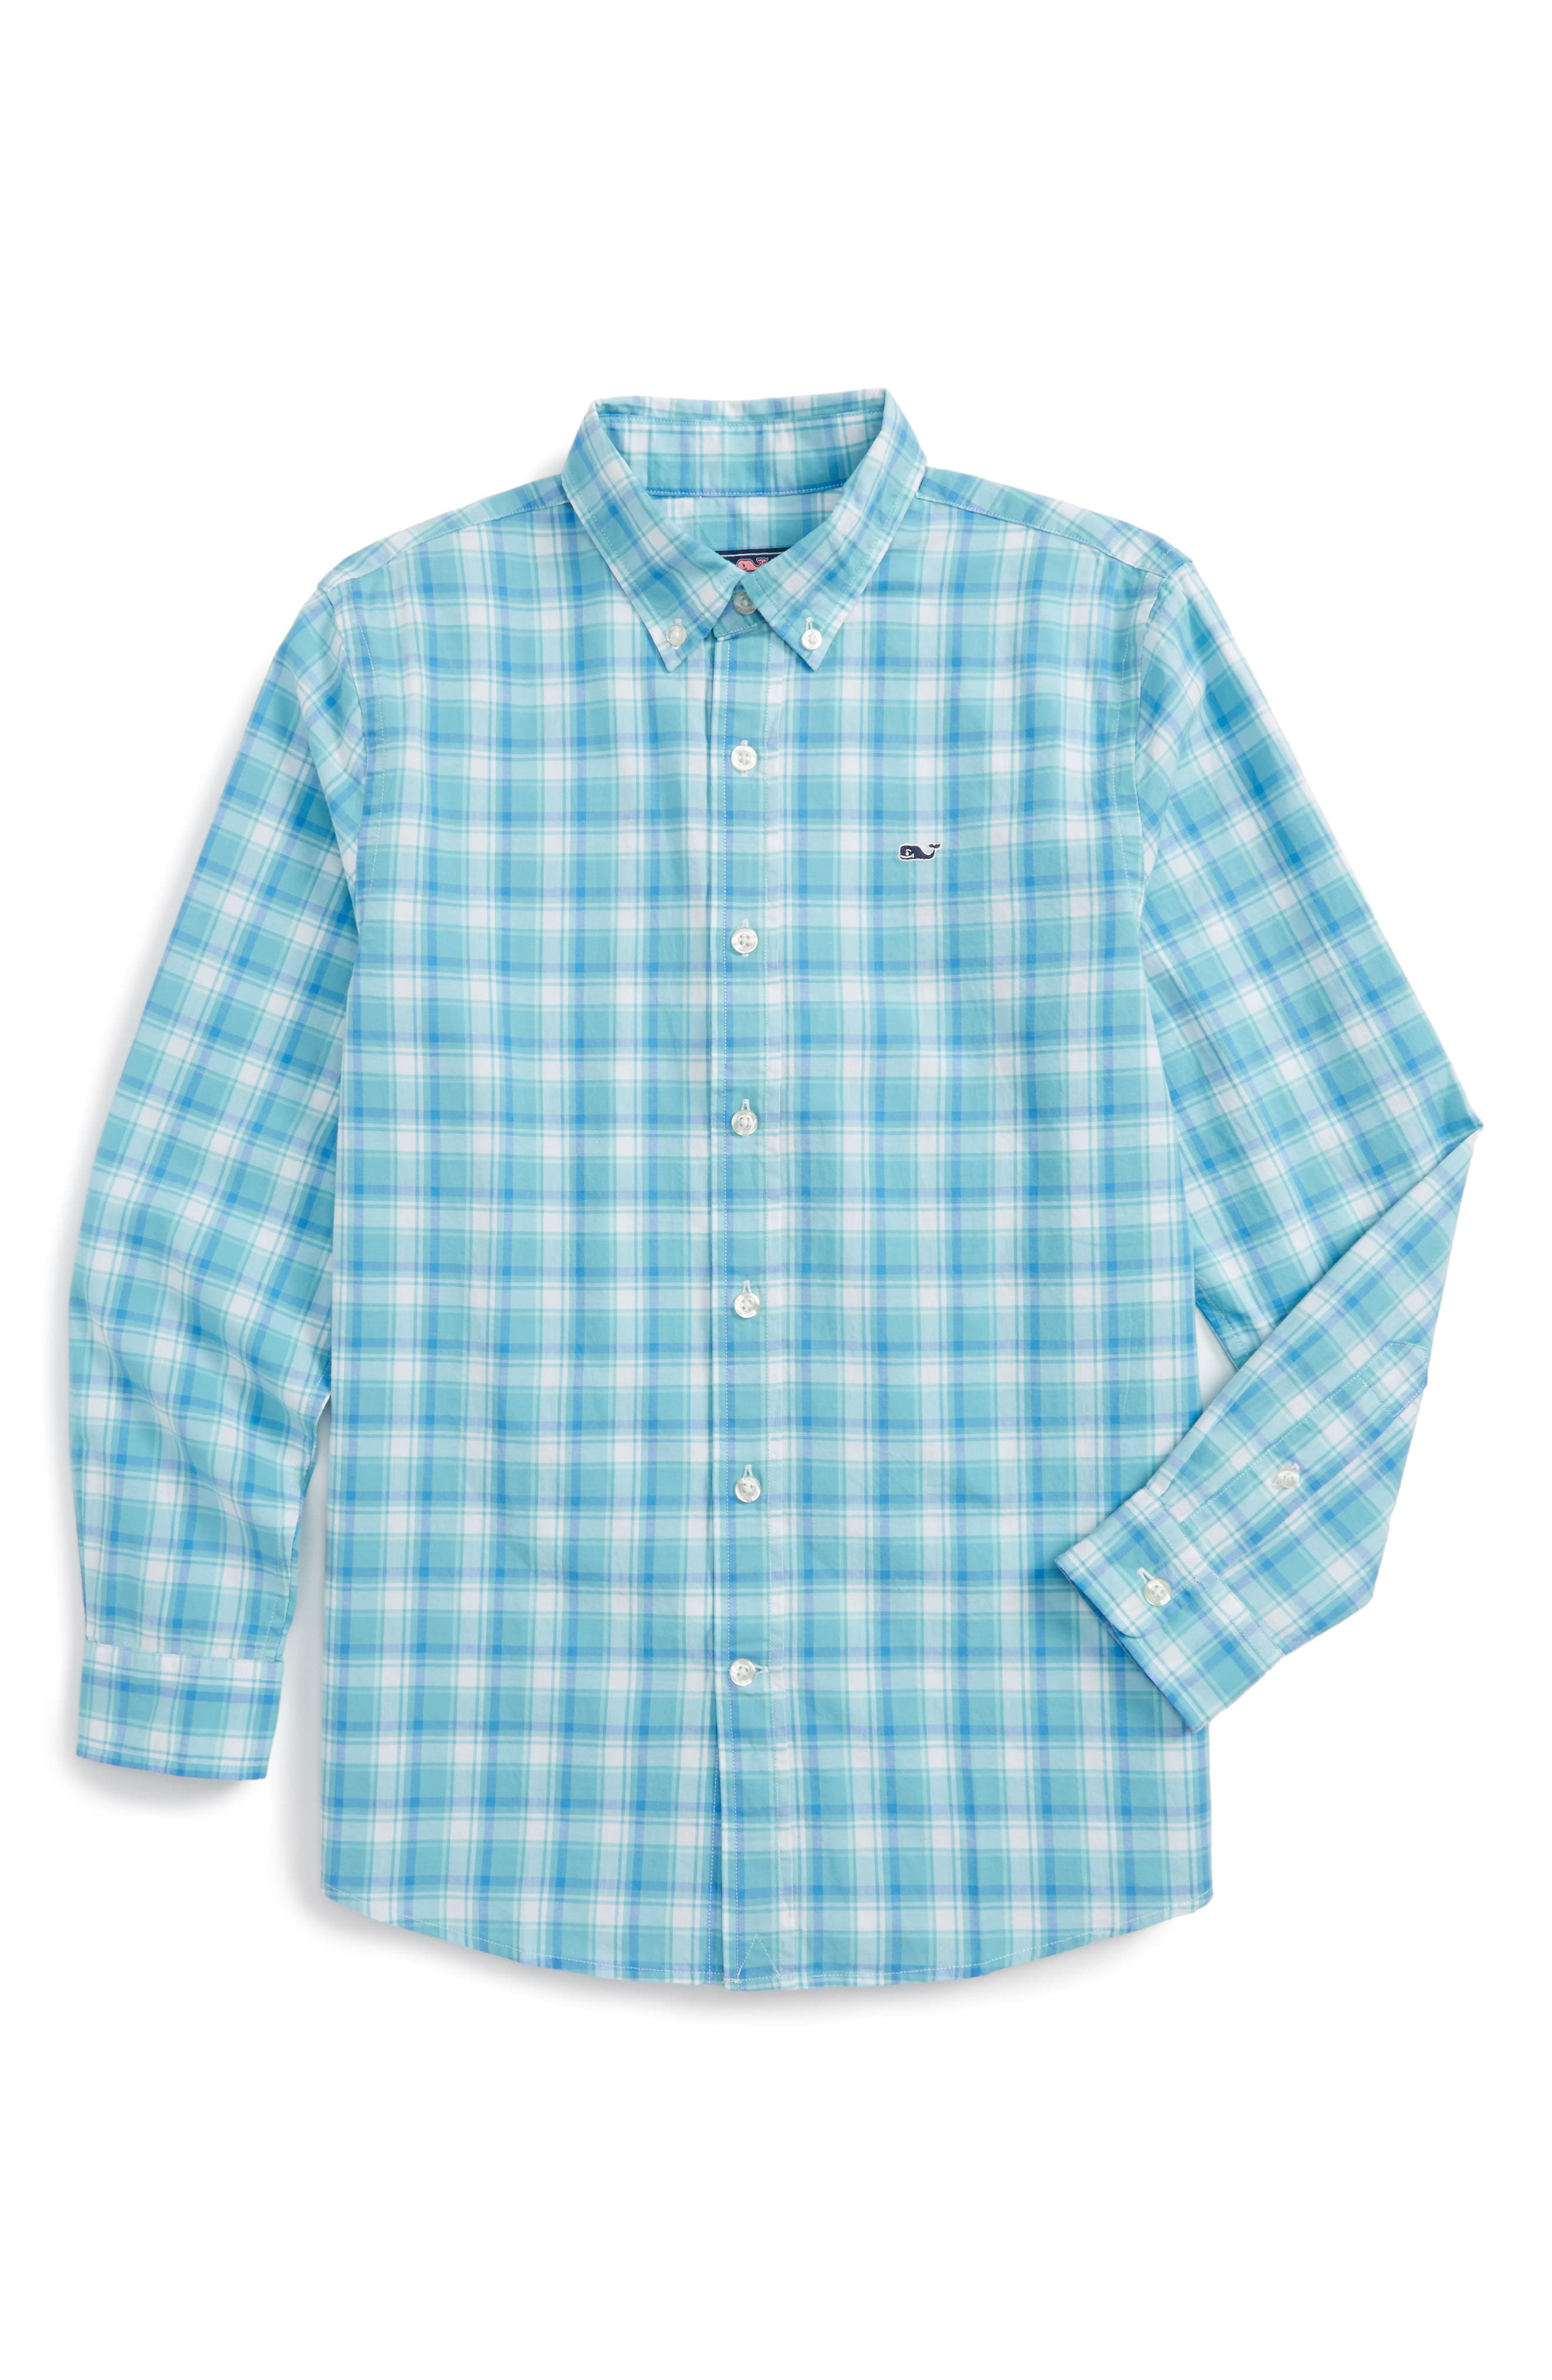 Point Plaid Cotton Shirt,                         Main,                         color, Aqua Ocean